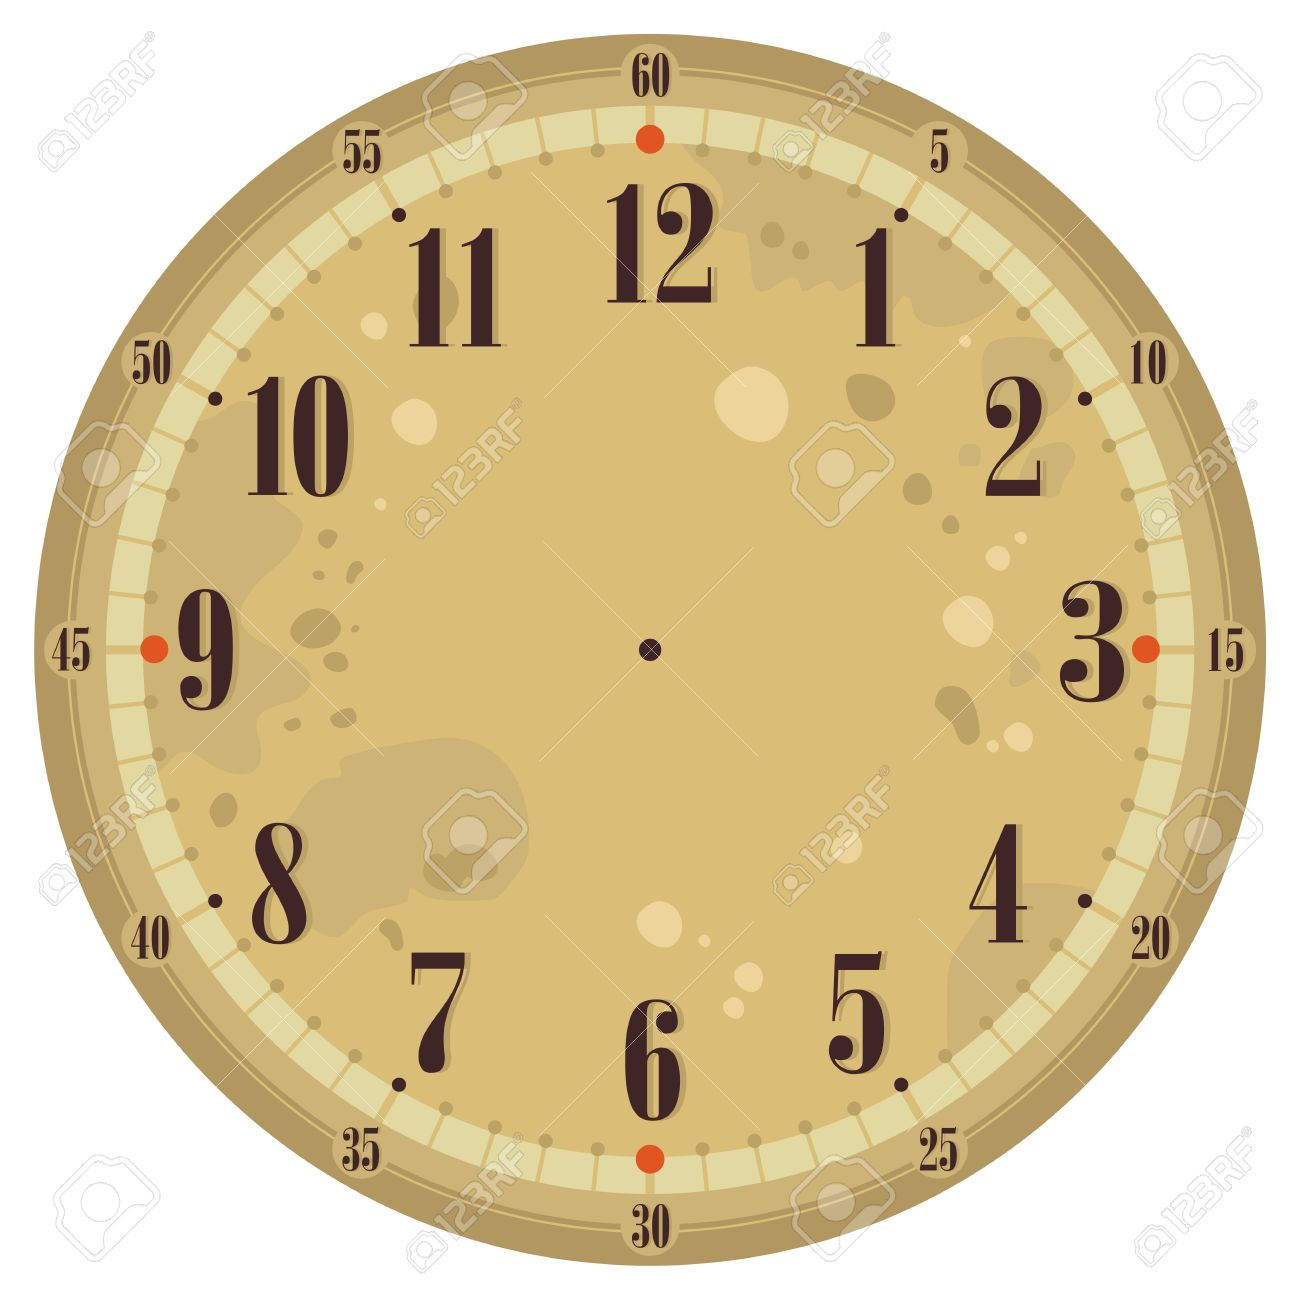 Clock Face Images Pictures Royalty Free Clock Face Photos – Clock Face Template